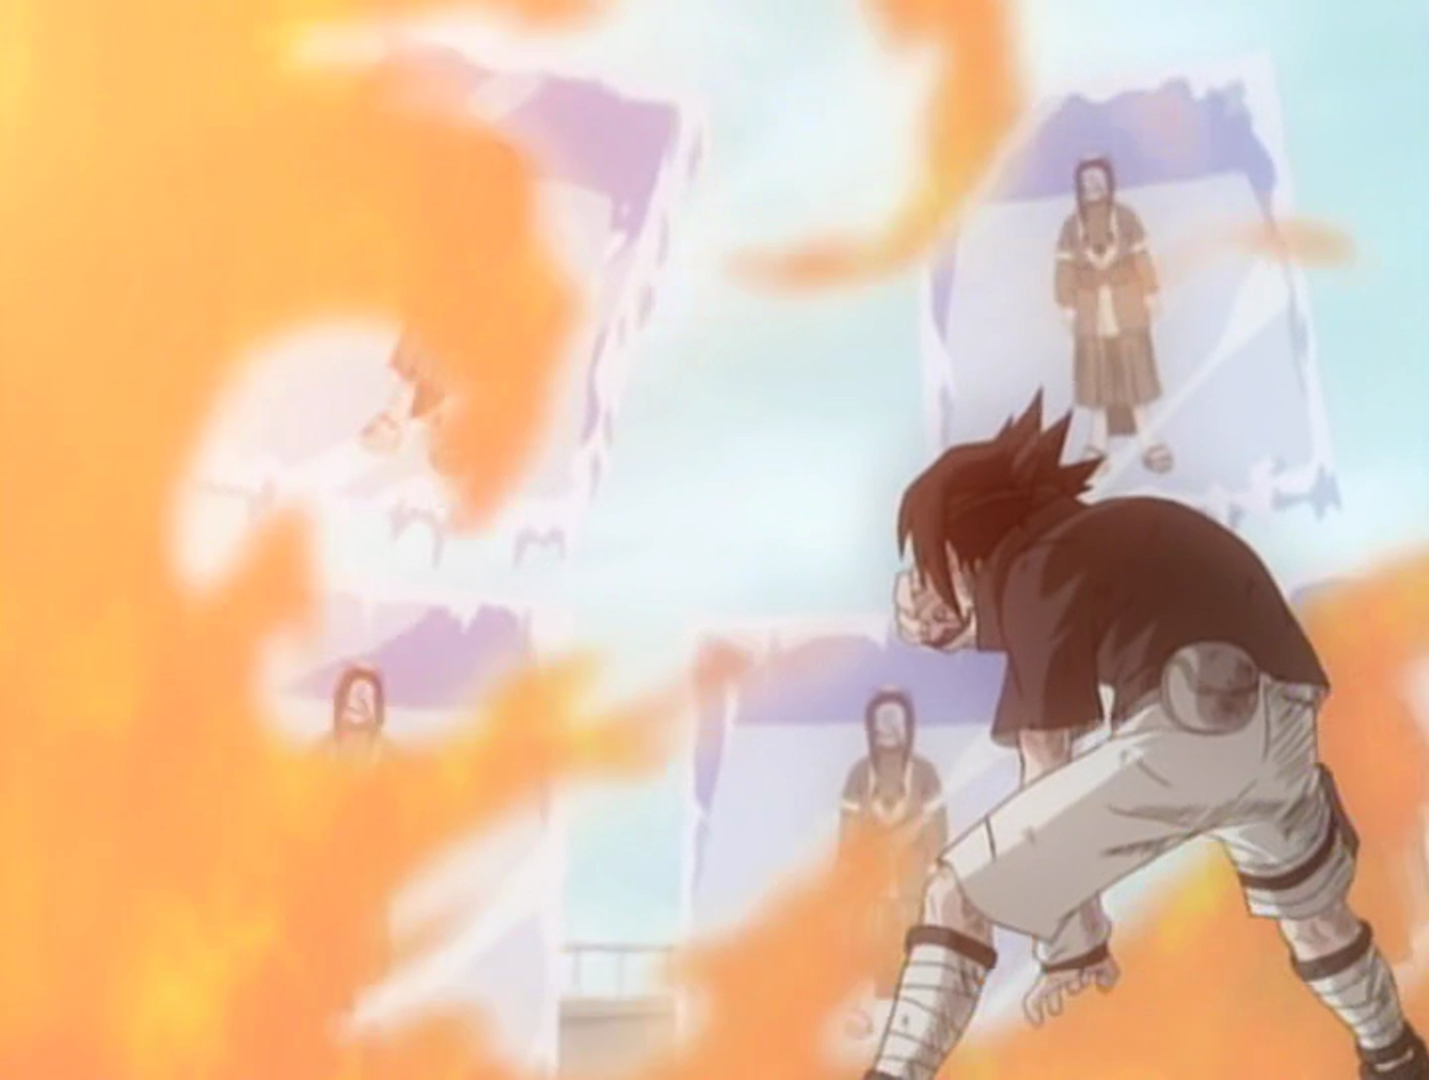 http://vignette1.wikia.nocookie.net/naruto/images/7/74/Sasuke_Trying_To_Melt_The_Mirrors.PNG/revision/latest?cb=20150216143449